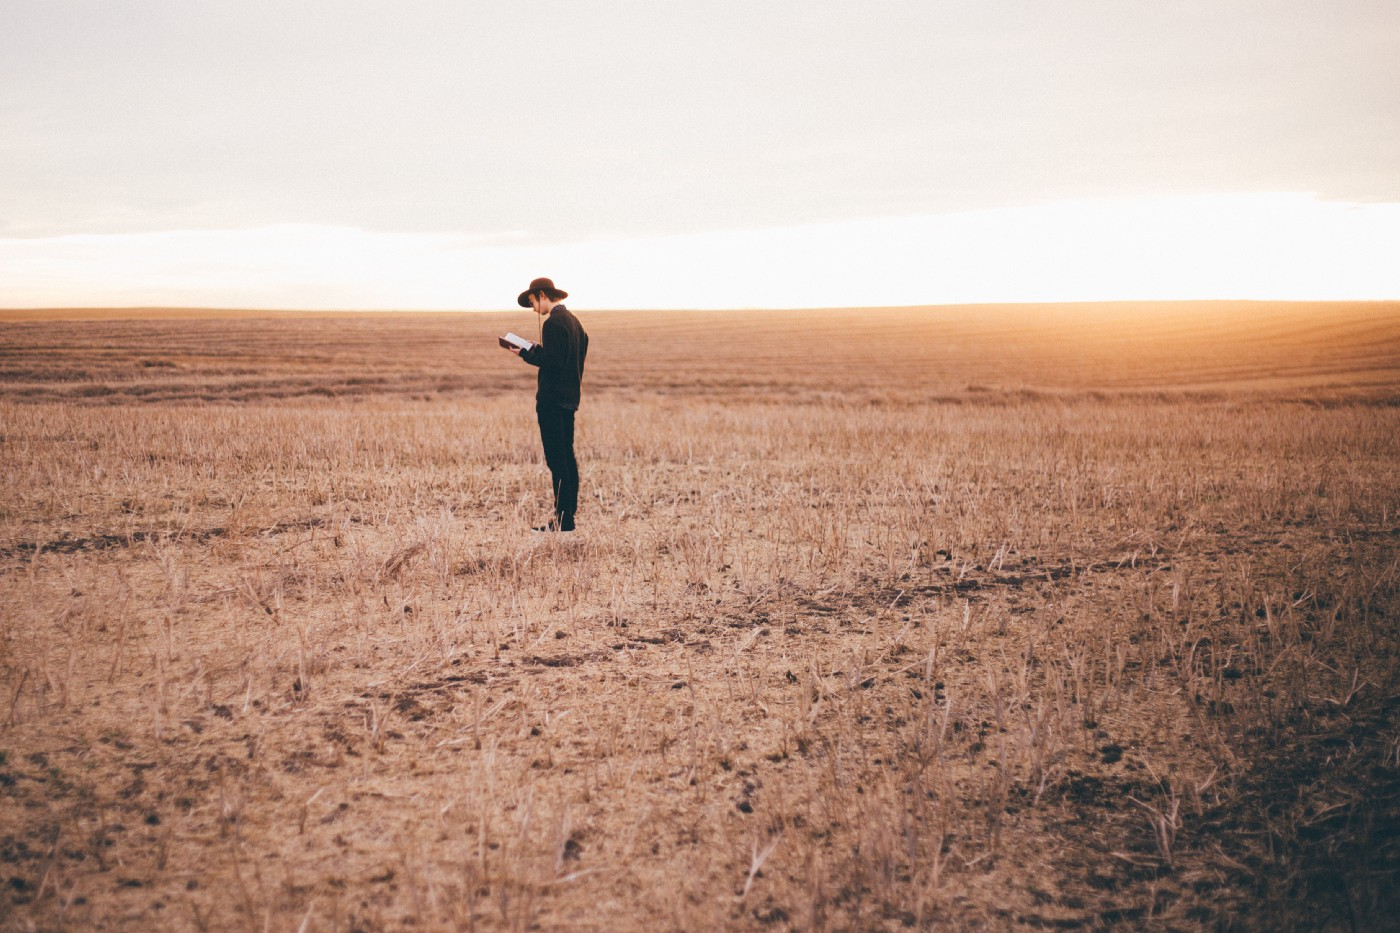 lone man standing out in a wheat field plain holding a book